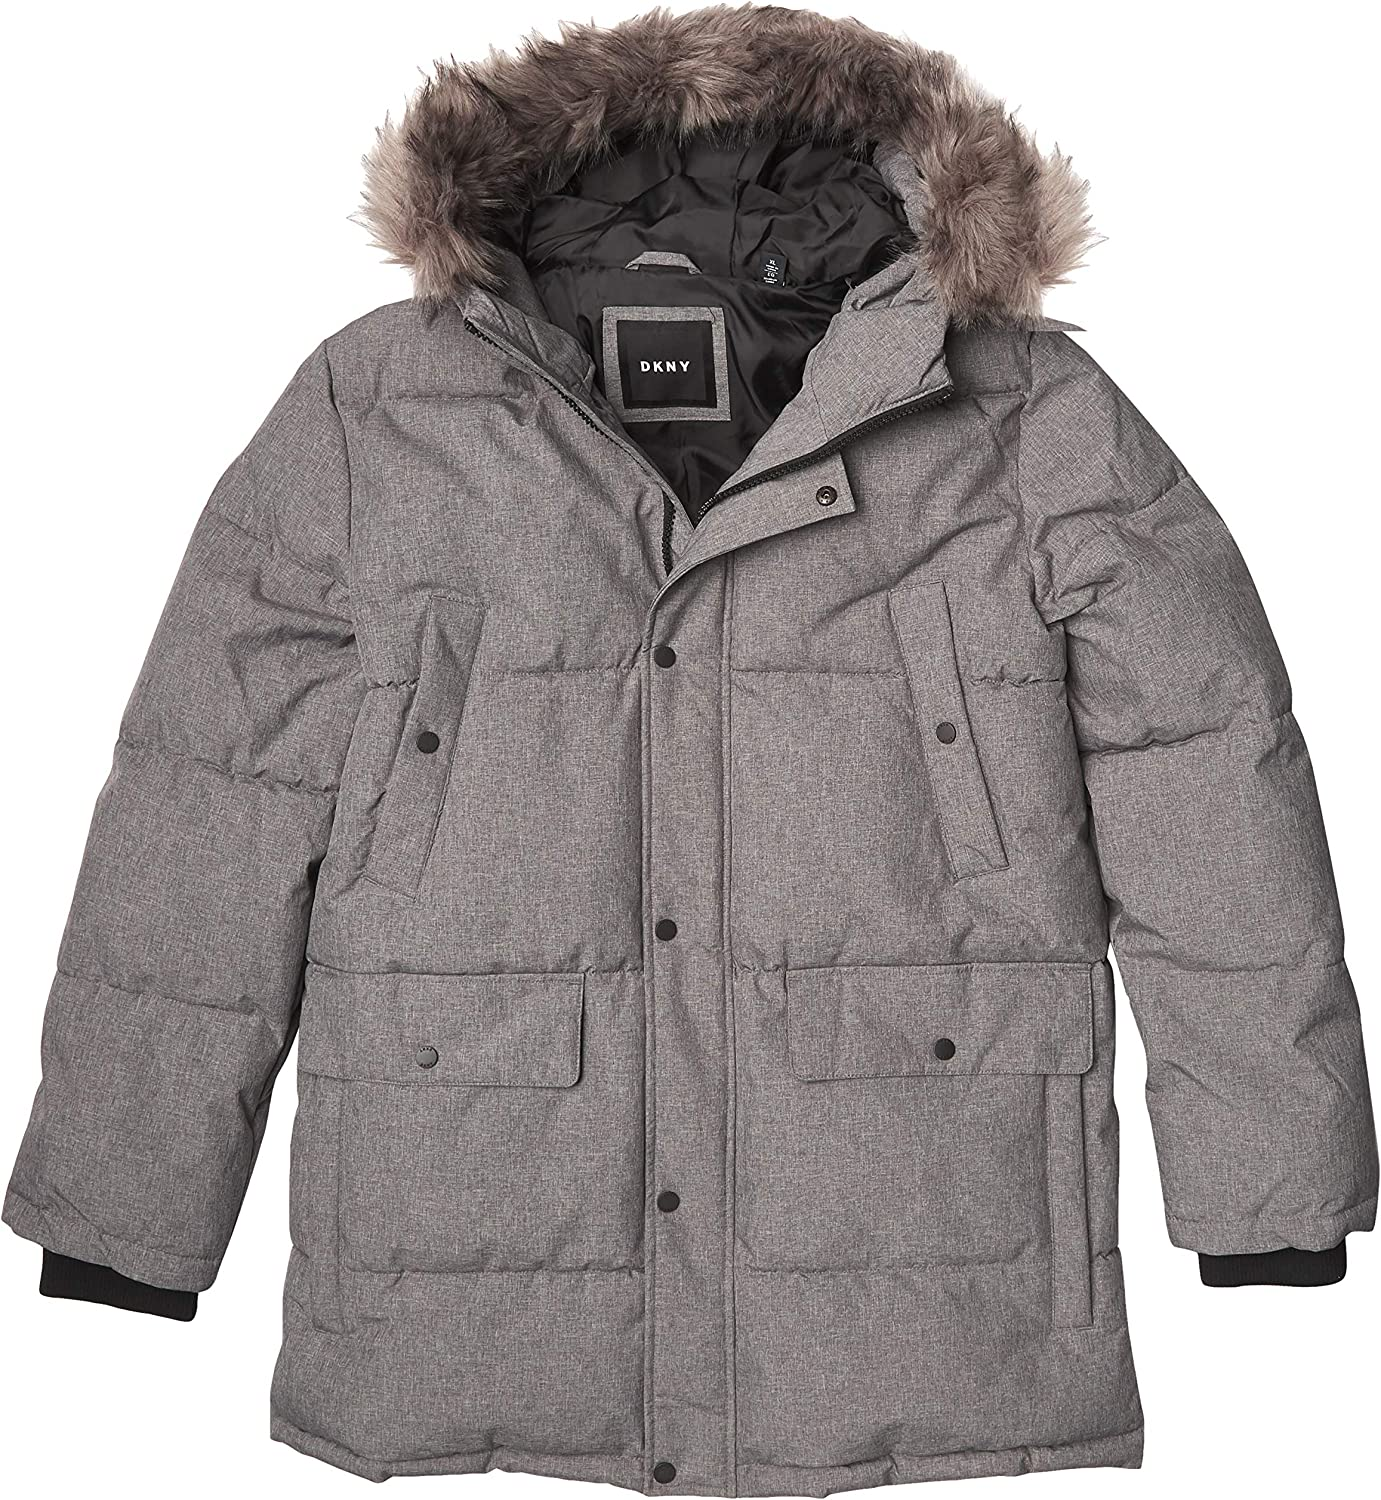 DKNY men's Sean Quilted Parka Jacket With Removable Faux Fur Hood